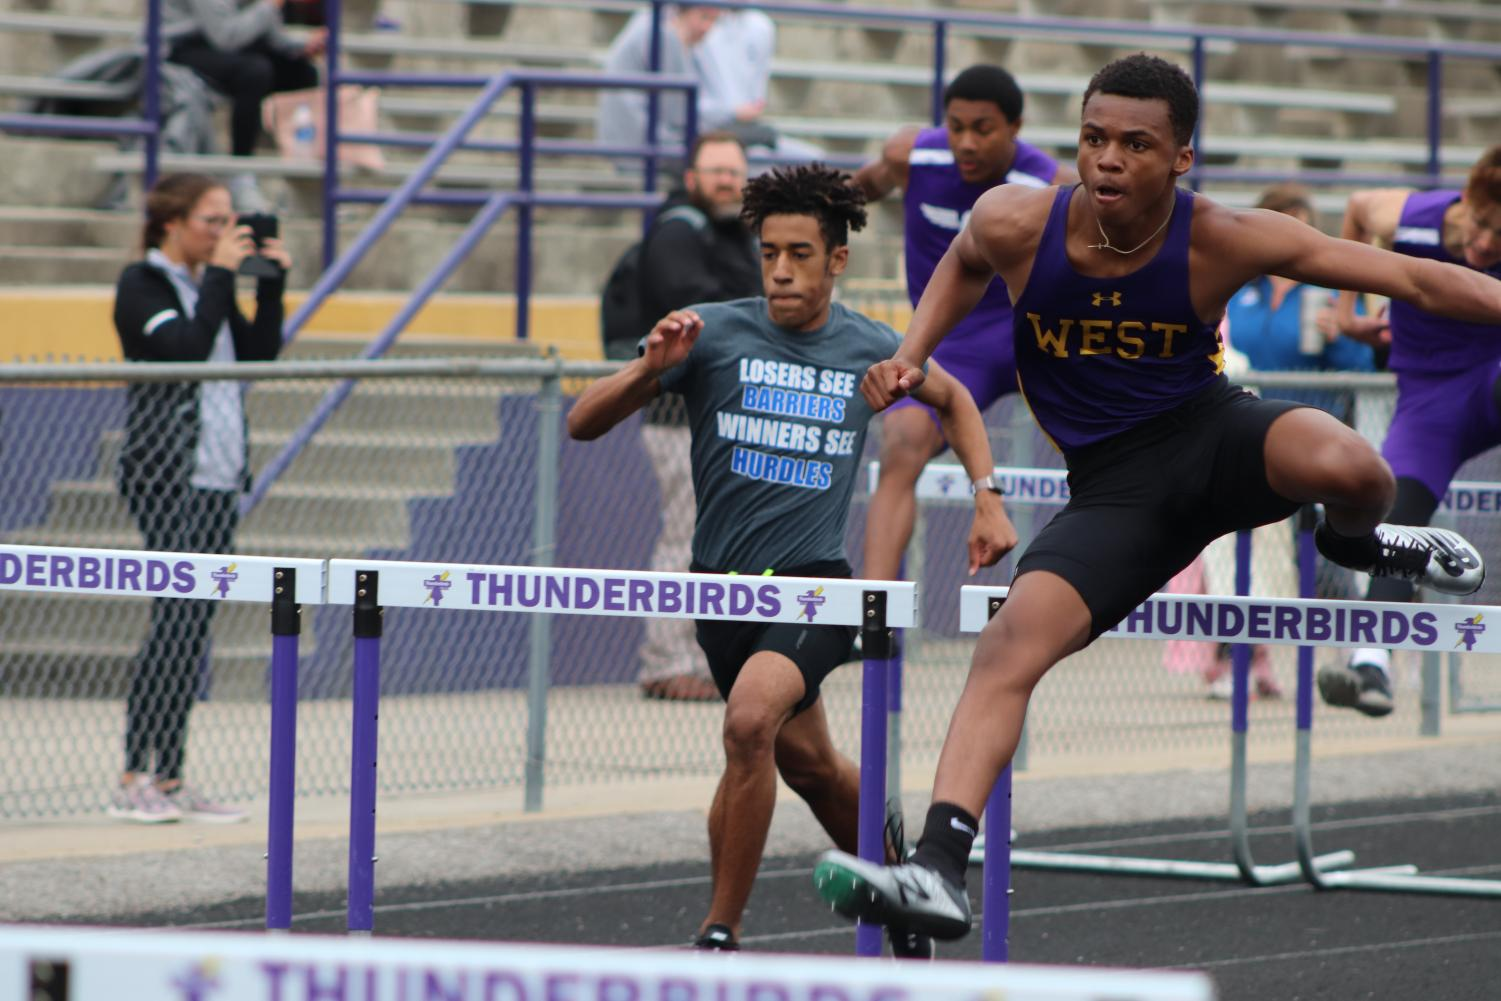 Track and Field meet photo essay 4/22/19